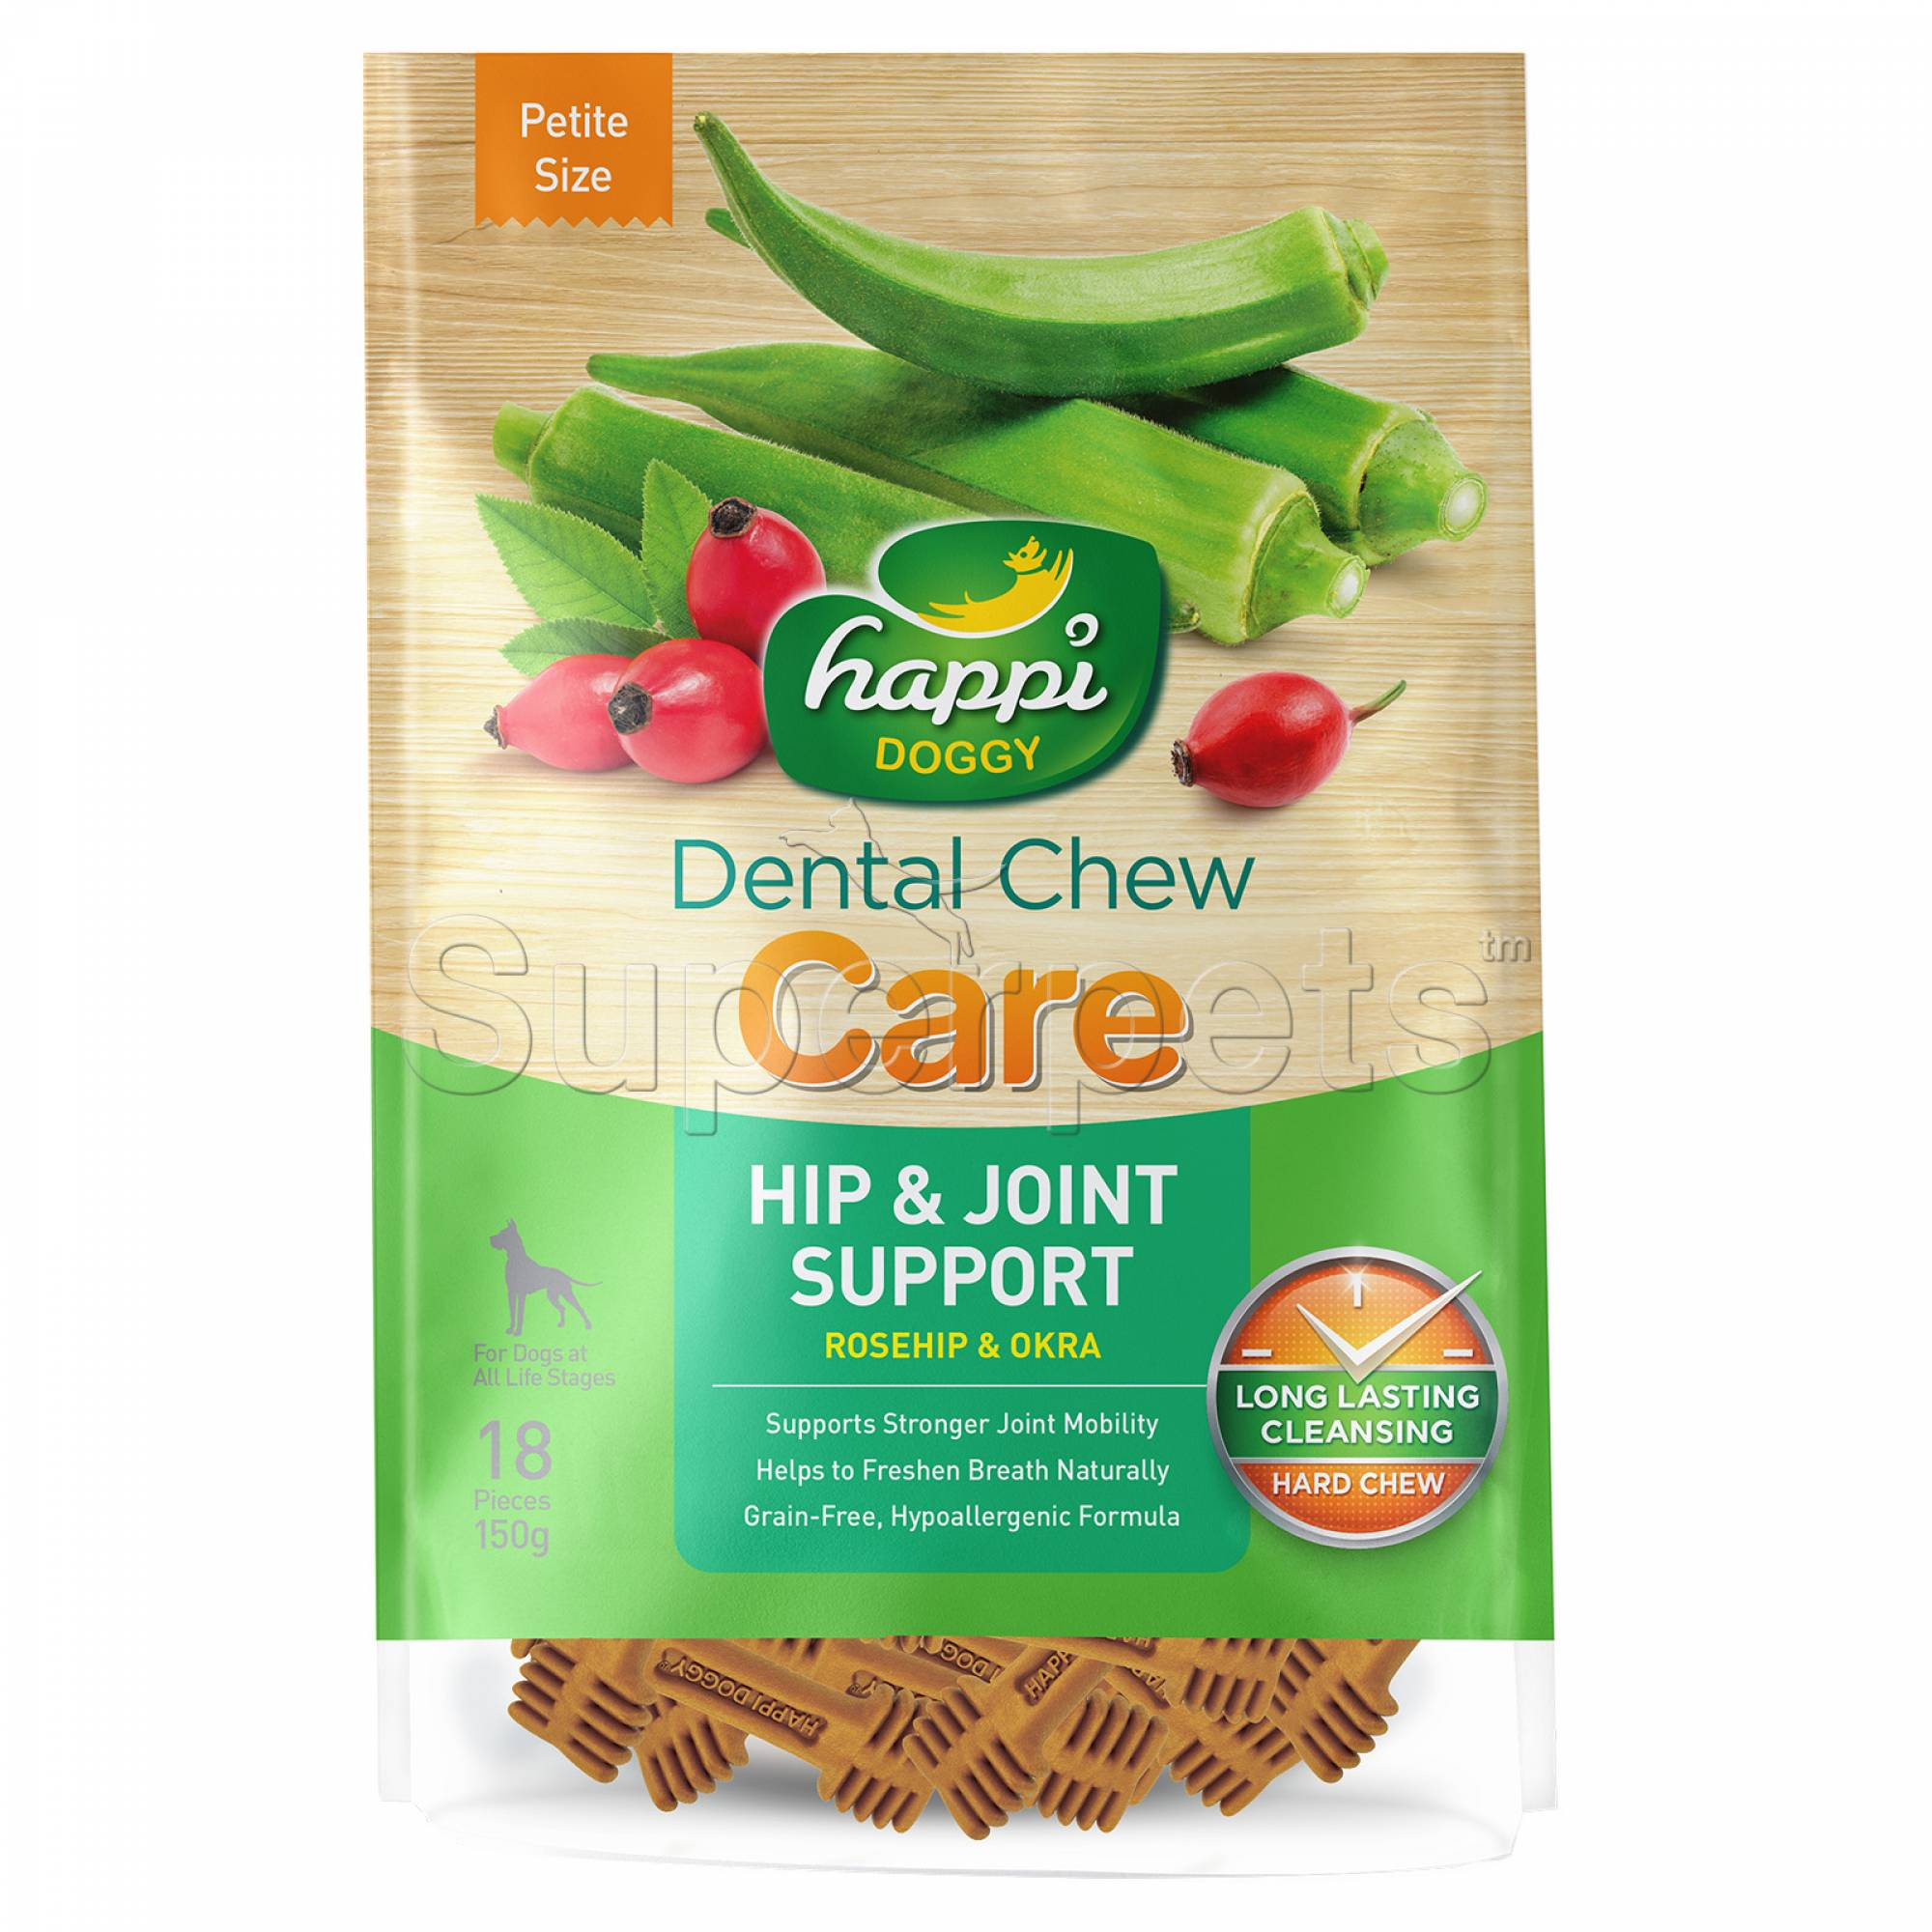 Happi Doggy H321 Dental Chew Care (Hip & Joint Support) Petite Size 18pcs 150g